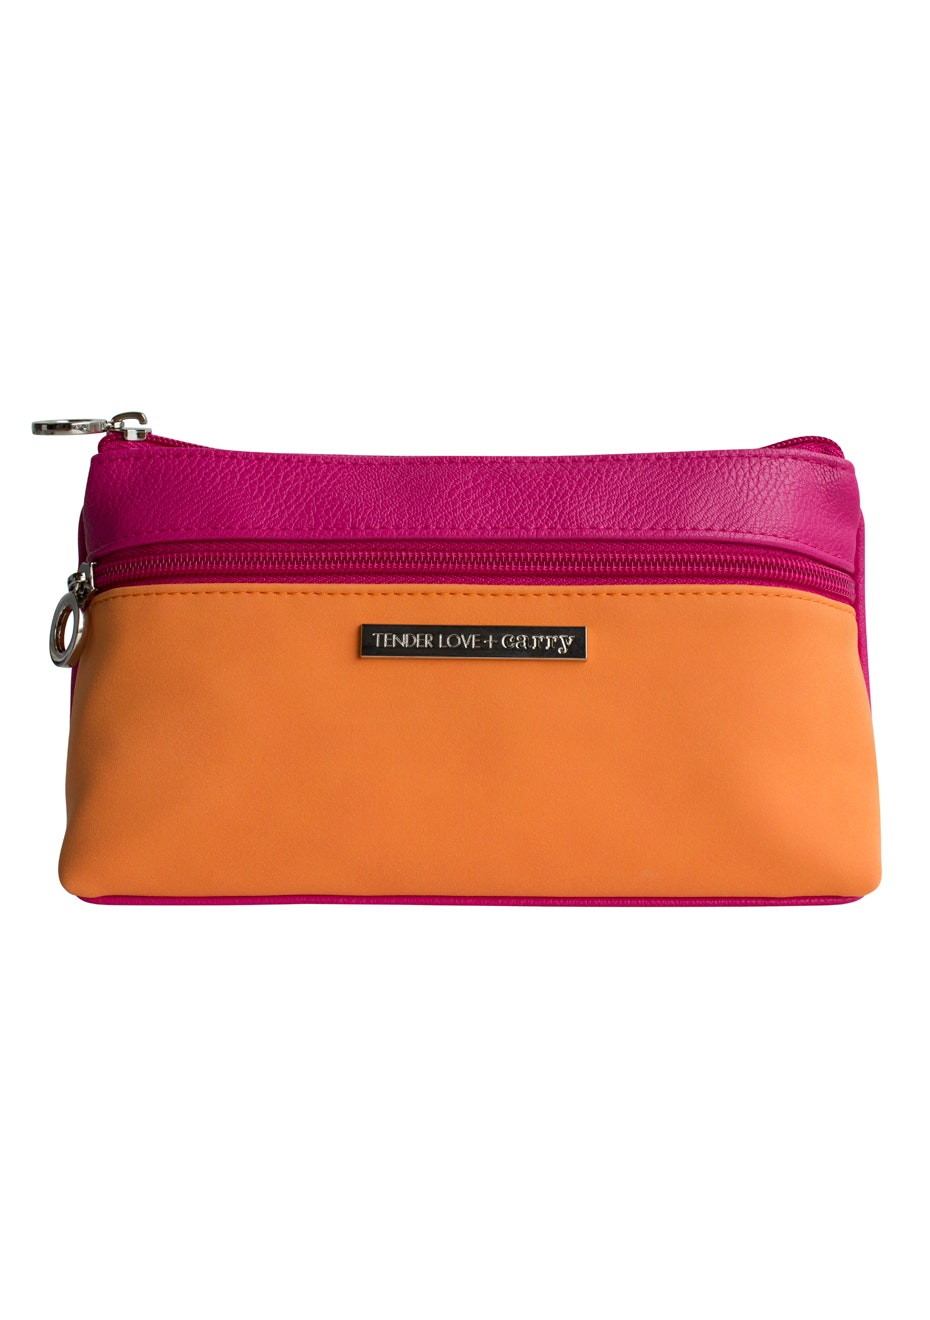 TL+C - Dynamic Duet Double Zip - Pink/Orange